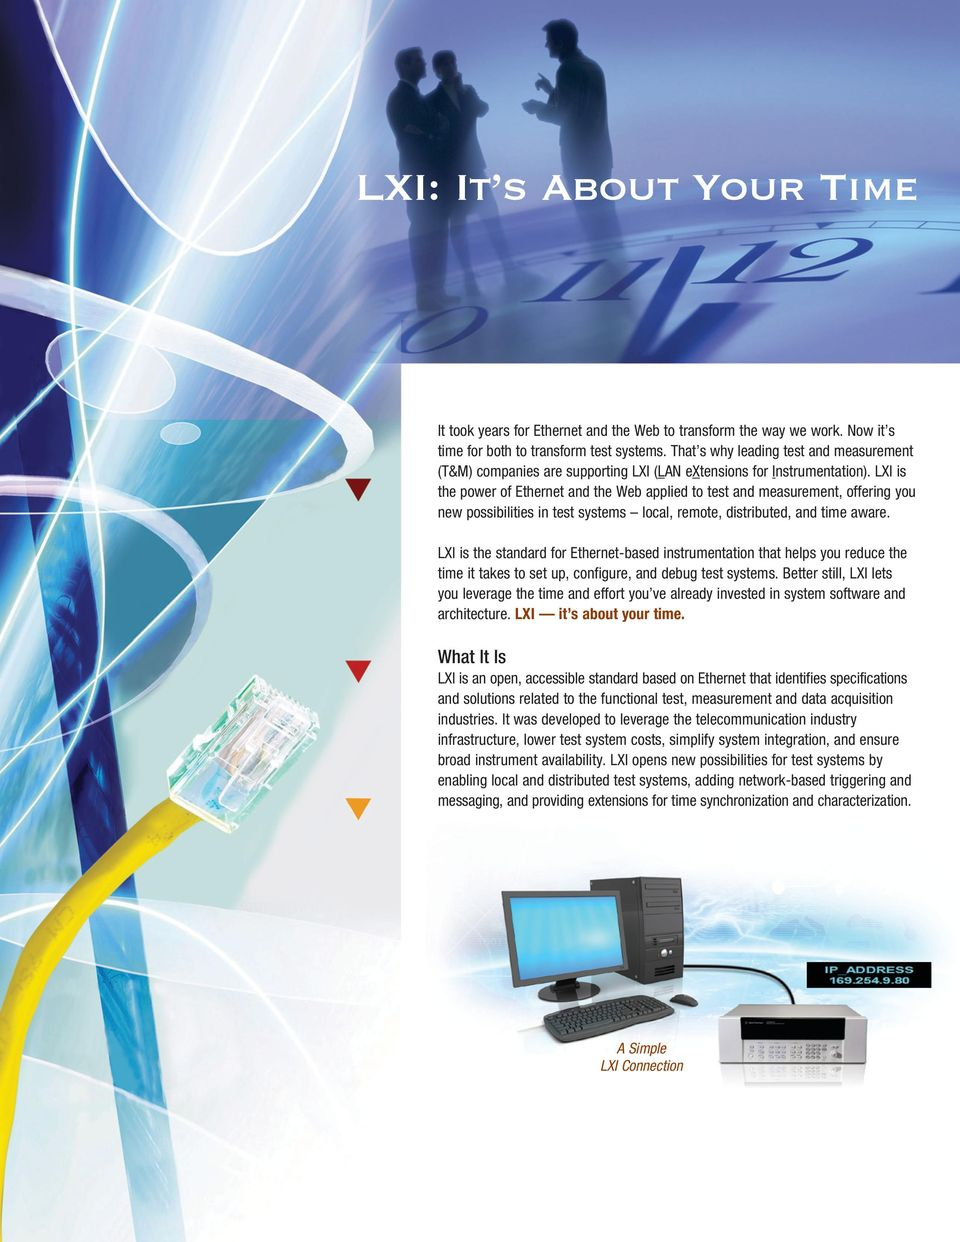 LXI is the power of Ethernet and the Web applied to test and measurement, offering you new possibilities in test systems local, remote, distributed, and time aware.